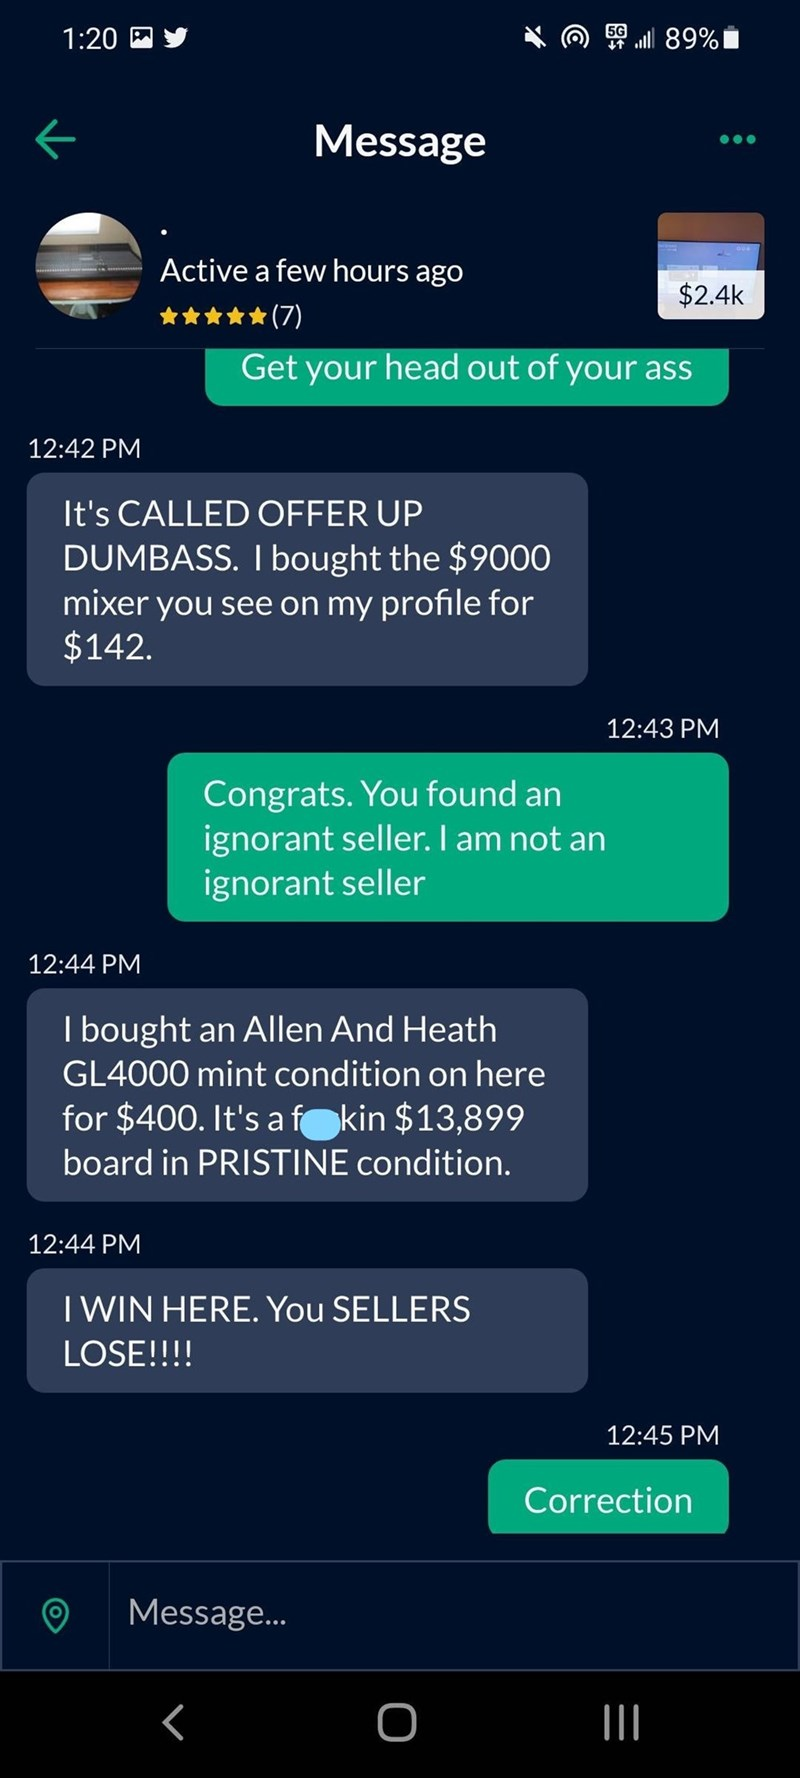 Product - 1:20 四乡 50 ll 89% Message Active a few hours ago $2.4k (7) Get your head out of your ass 12:42 PM It's CALLED OFFER UP DUMBASS. I bought the $9000 mixer you see on my profile for $142. 12:43 PM Congrats. You found an ignorant seller. I am not an ignorant seller 12:44 PM I bought an Allen And Heath GL4000 mint condition on here for $400. It's af kin $13,899 board in PRISTINE condition. 12:44 PM I WIN HERE. You SELLERS LOSE!!!! 12:45 PM Correction Message.. II